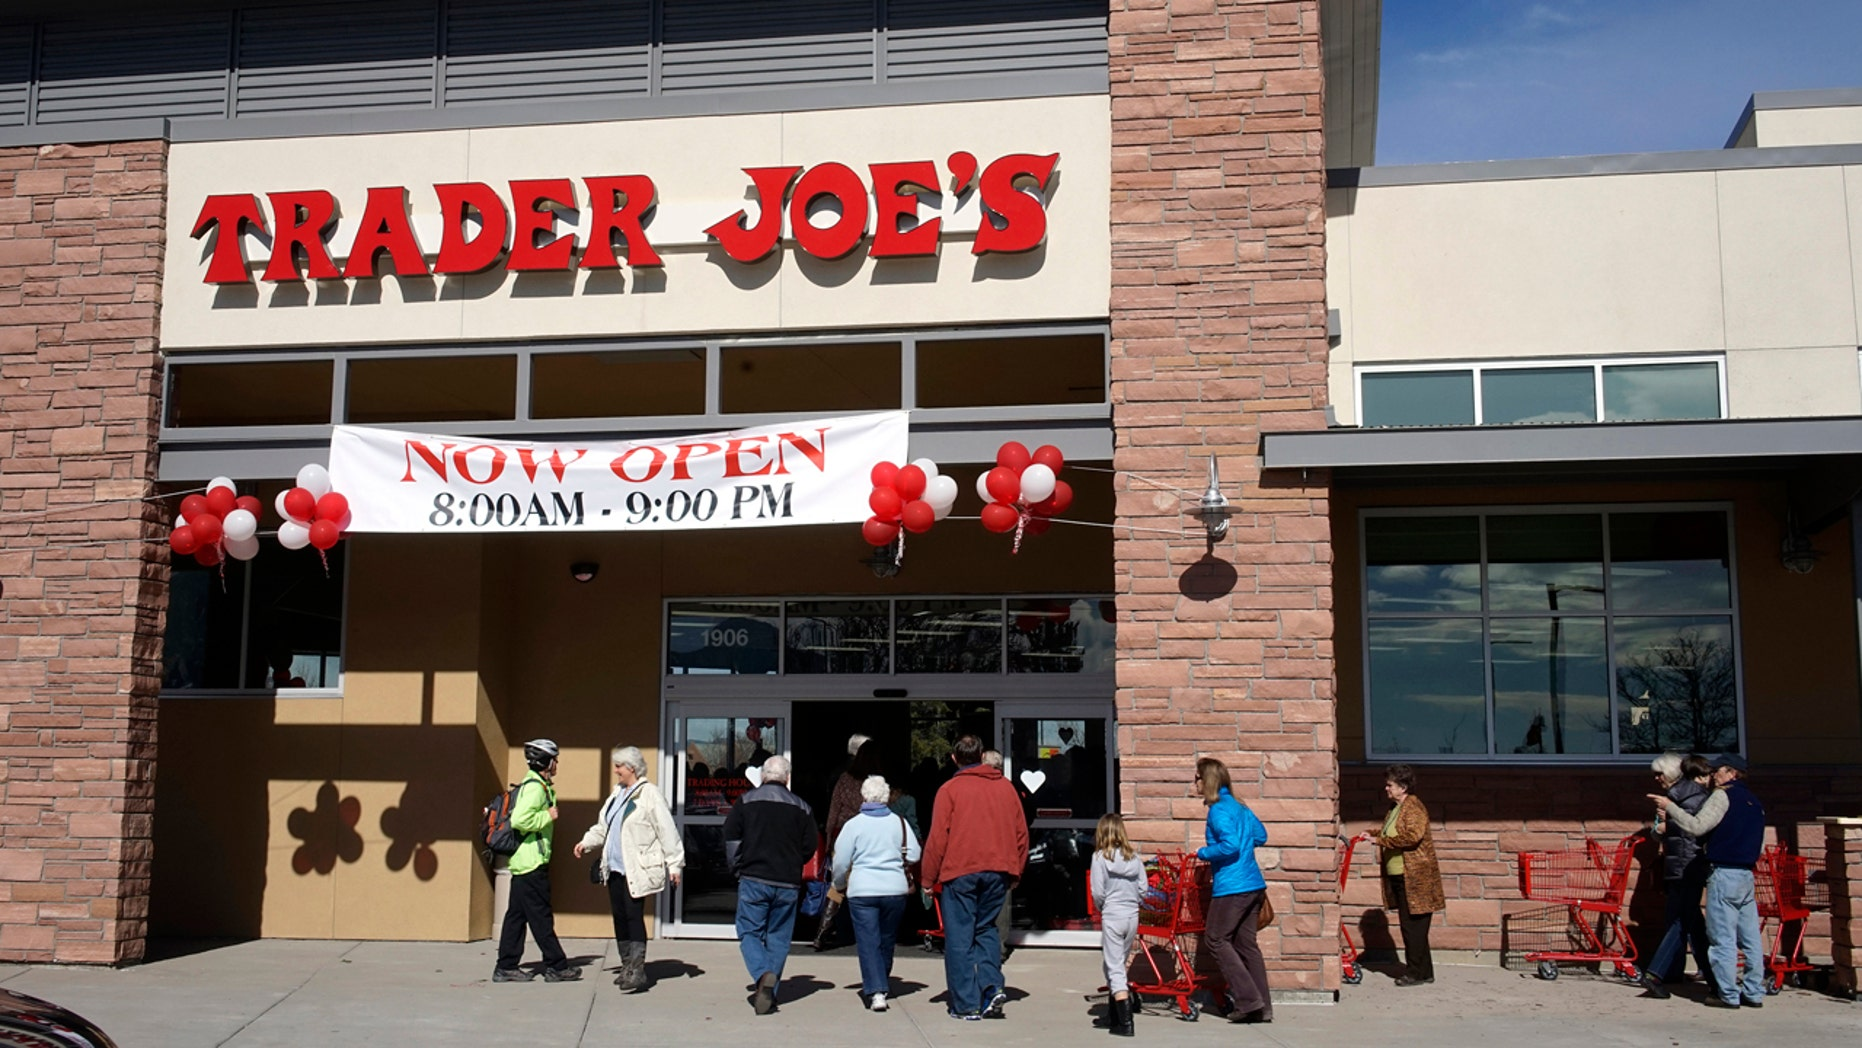 Shoppers line up to enter the new Trader Joe's store in Boulder, Colorado February 14, 2014. Trader Joe's opened in Colorado for the first time February 14, with three stores in the Denver metro area.  REUTERS/Rick Wilking (UNITED STATES - Tags: SOCIETY BUSINESS) - RTX18UIL